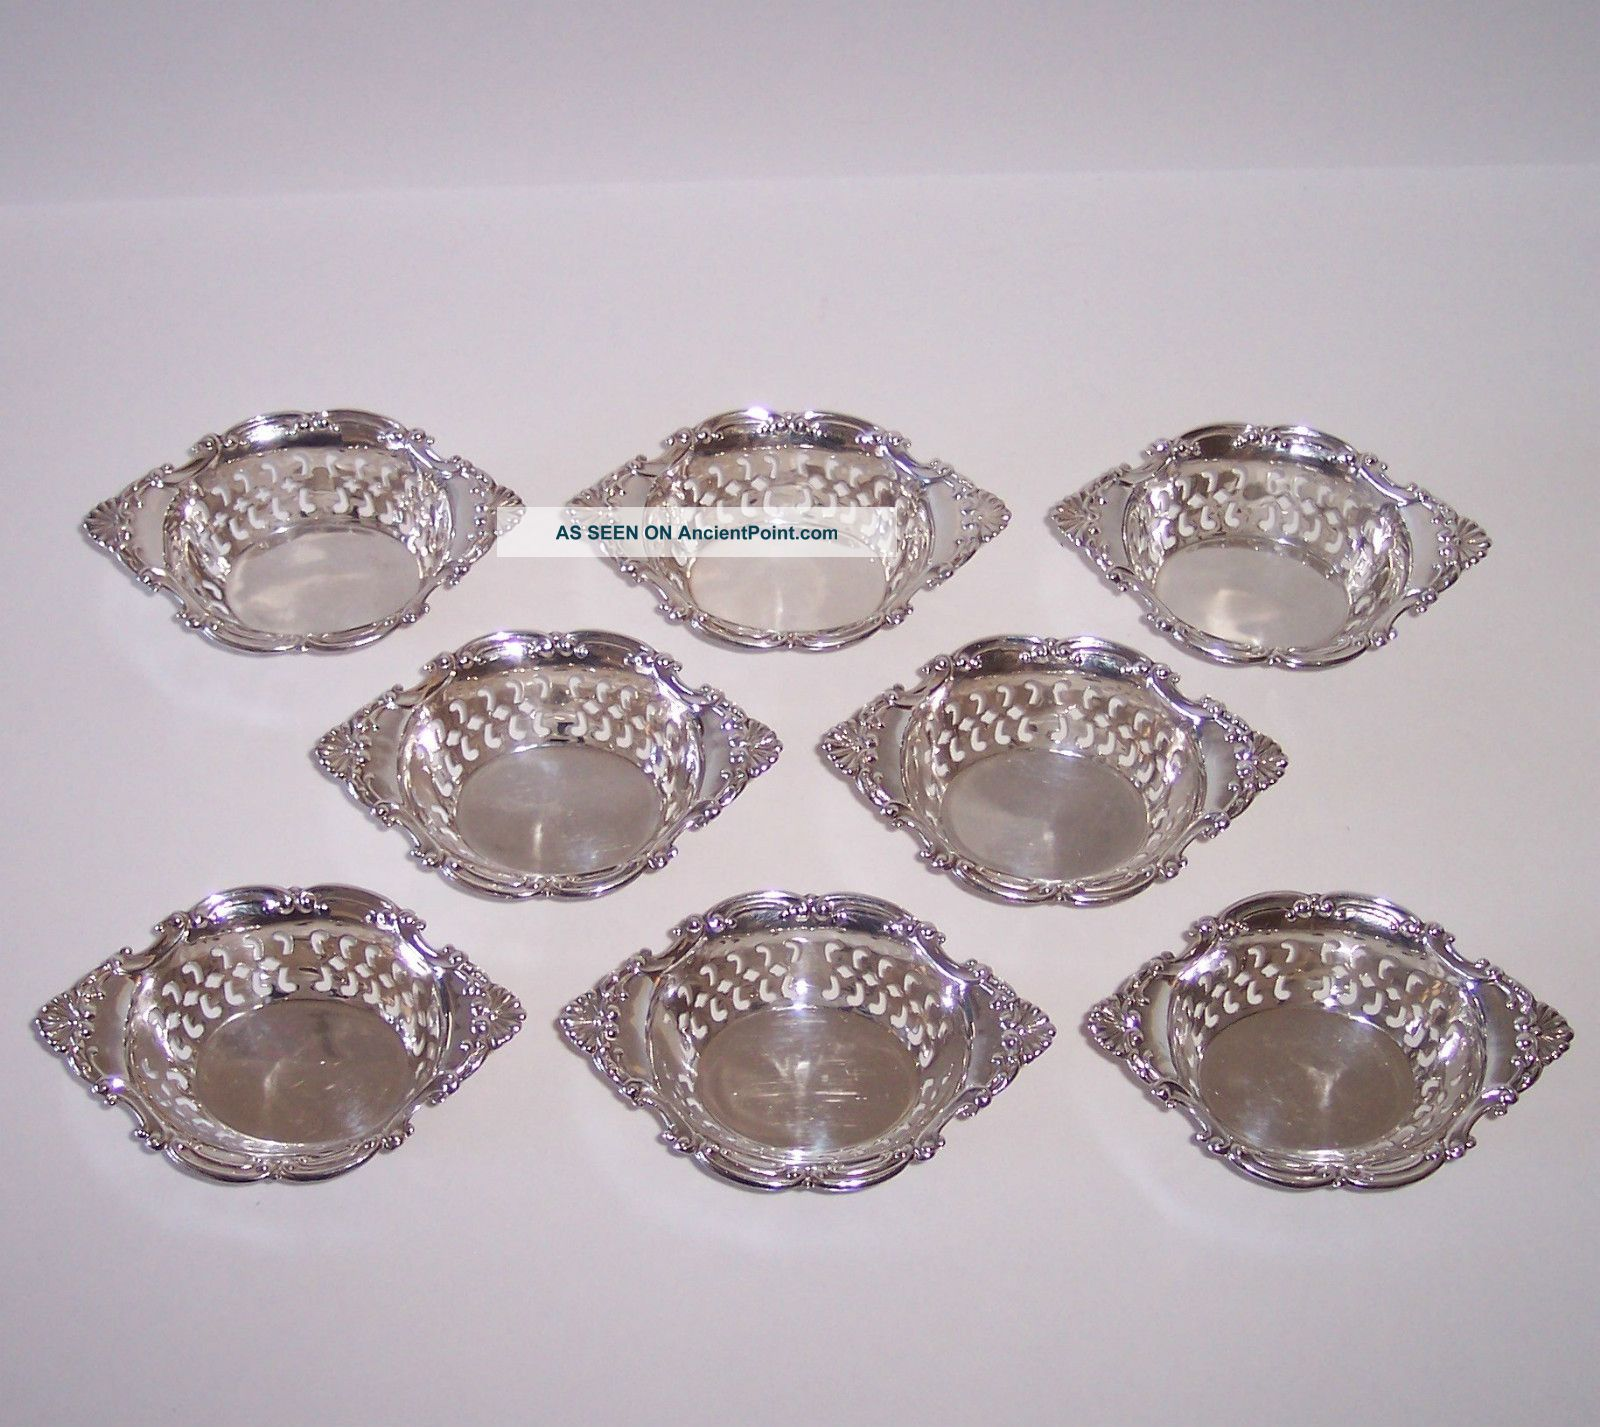 Birks Sterling Silver 8 Nut Dishes Pierced Pompadour Gorham Cromwell Bowls photo